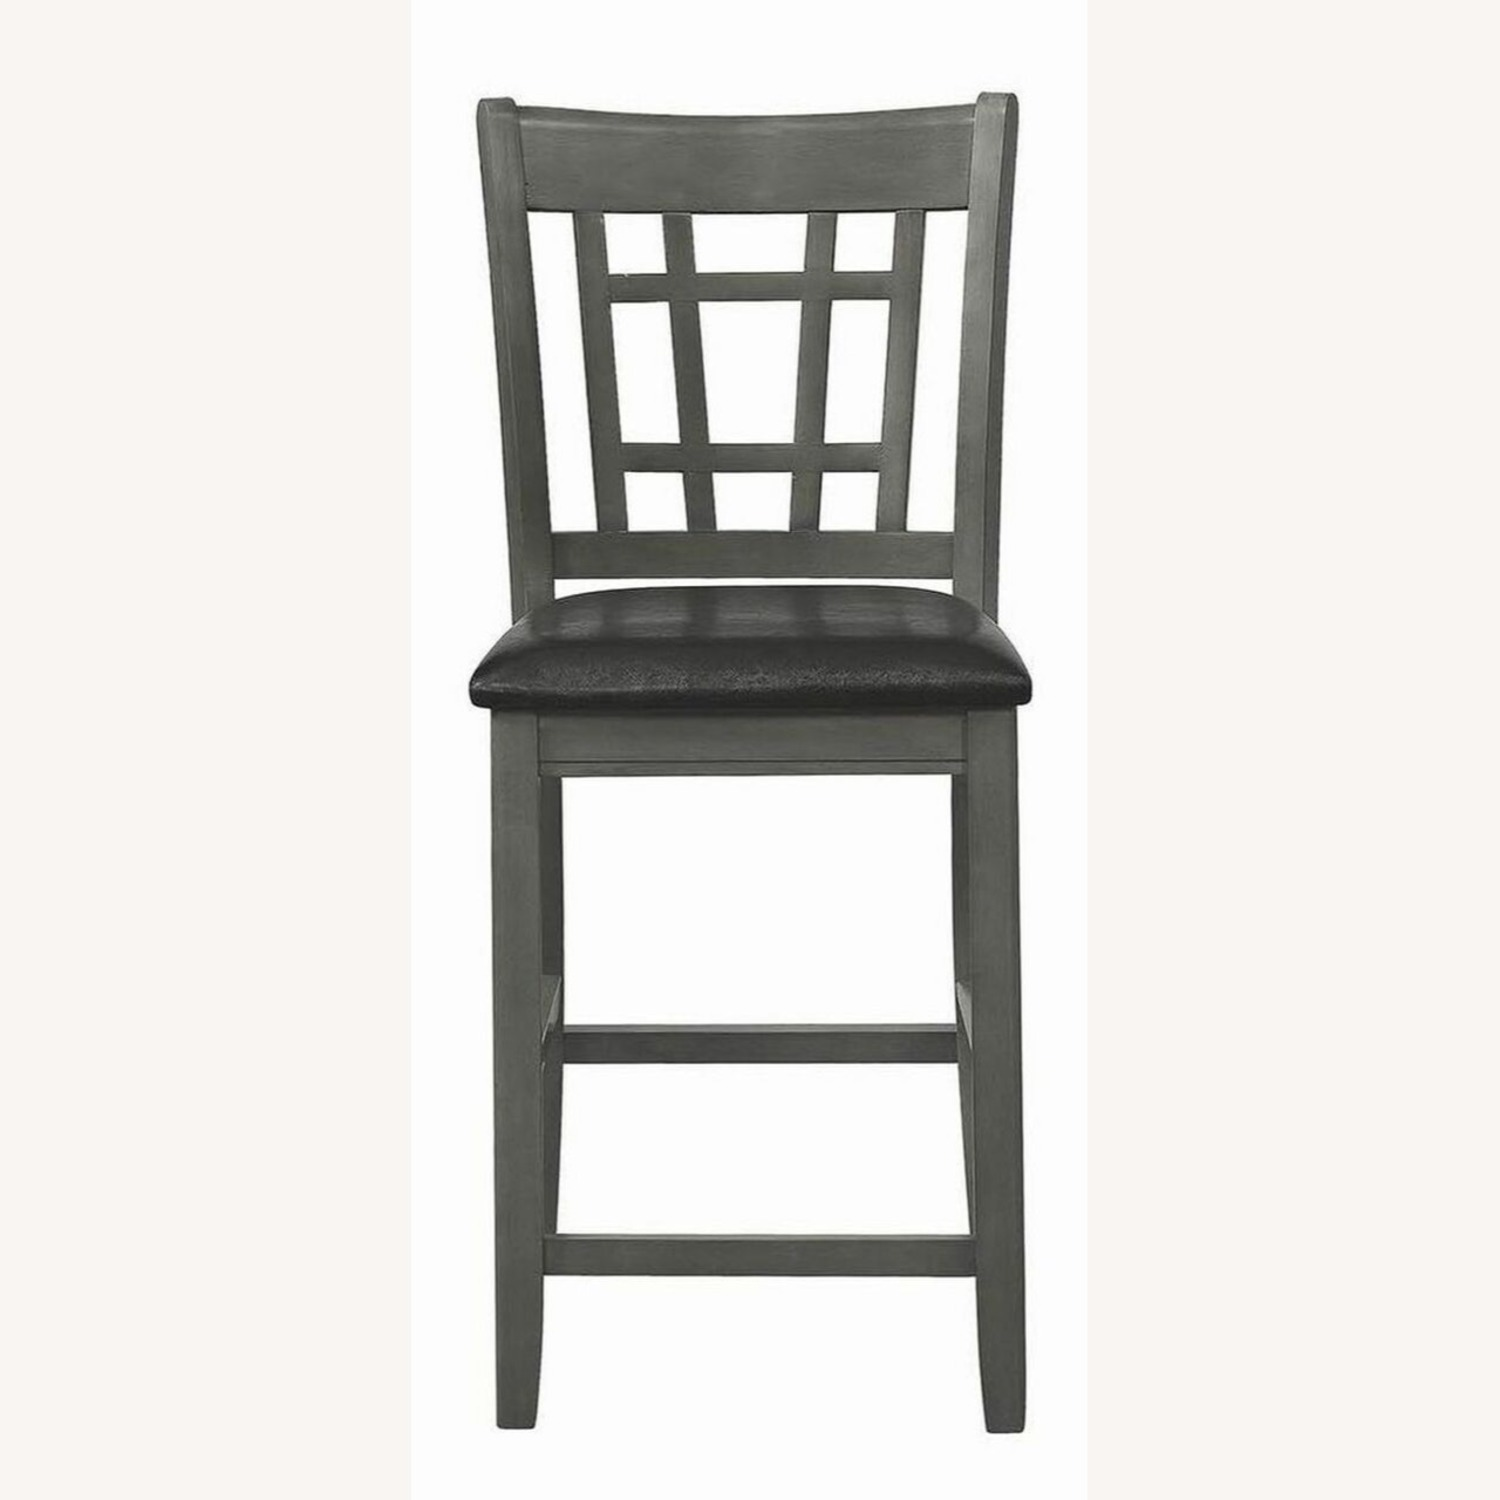 Counter Height Chair In Medium Gray Finish - image-2